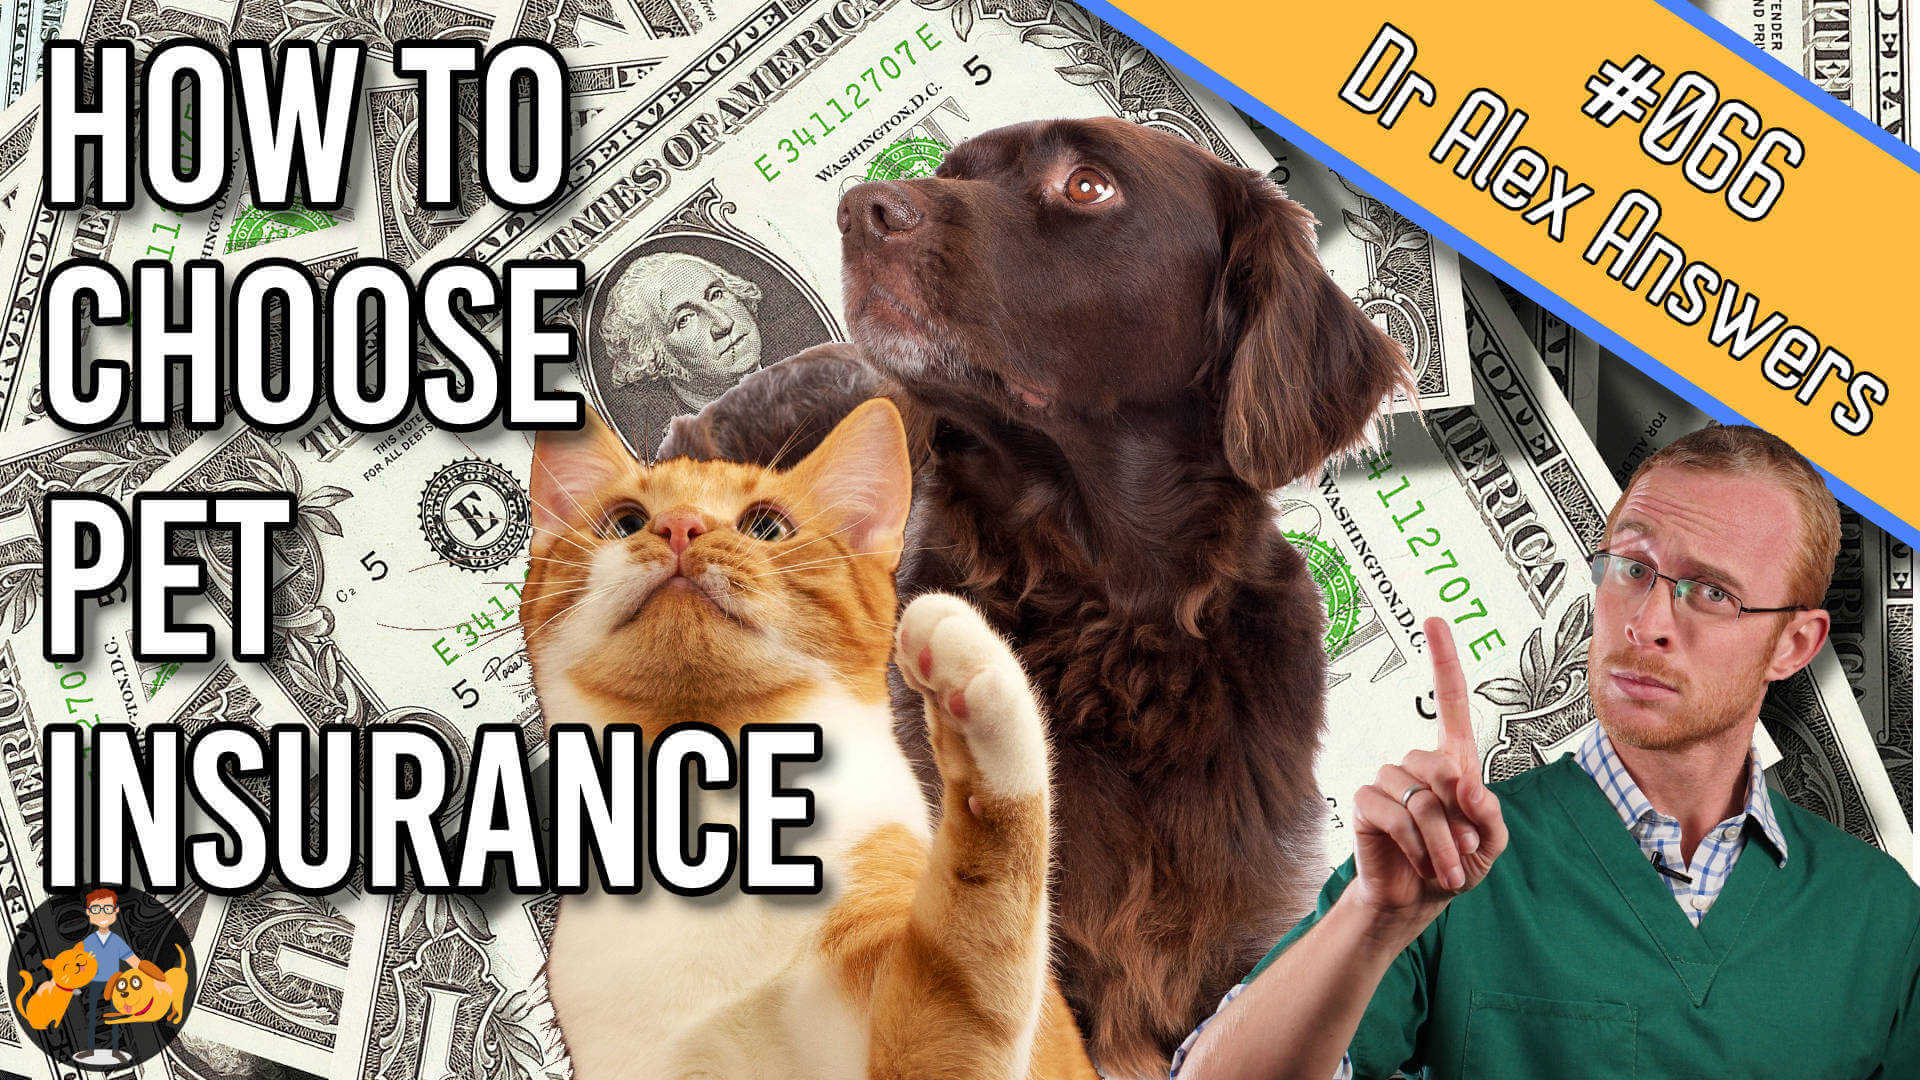 how to choose the best pet insurance with a picture of dollar bills and a dog and cat